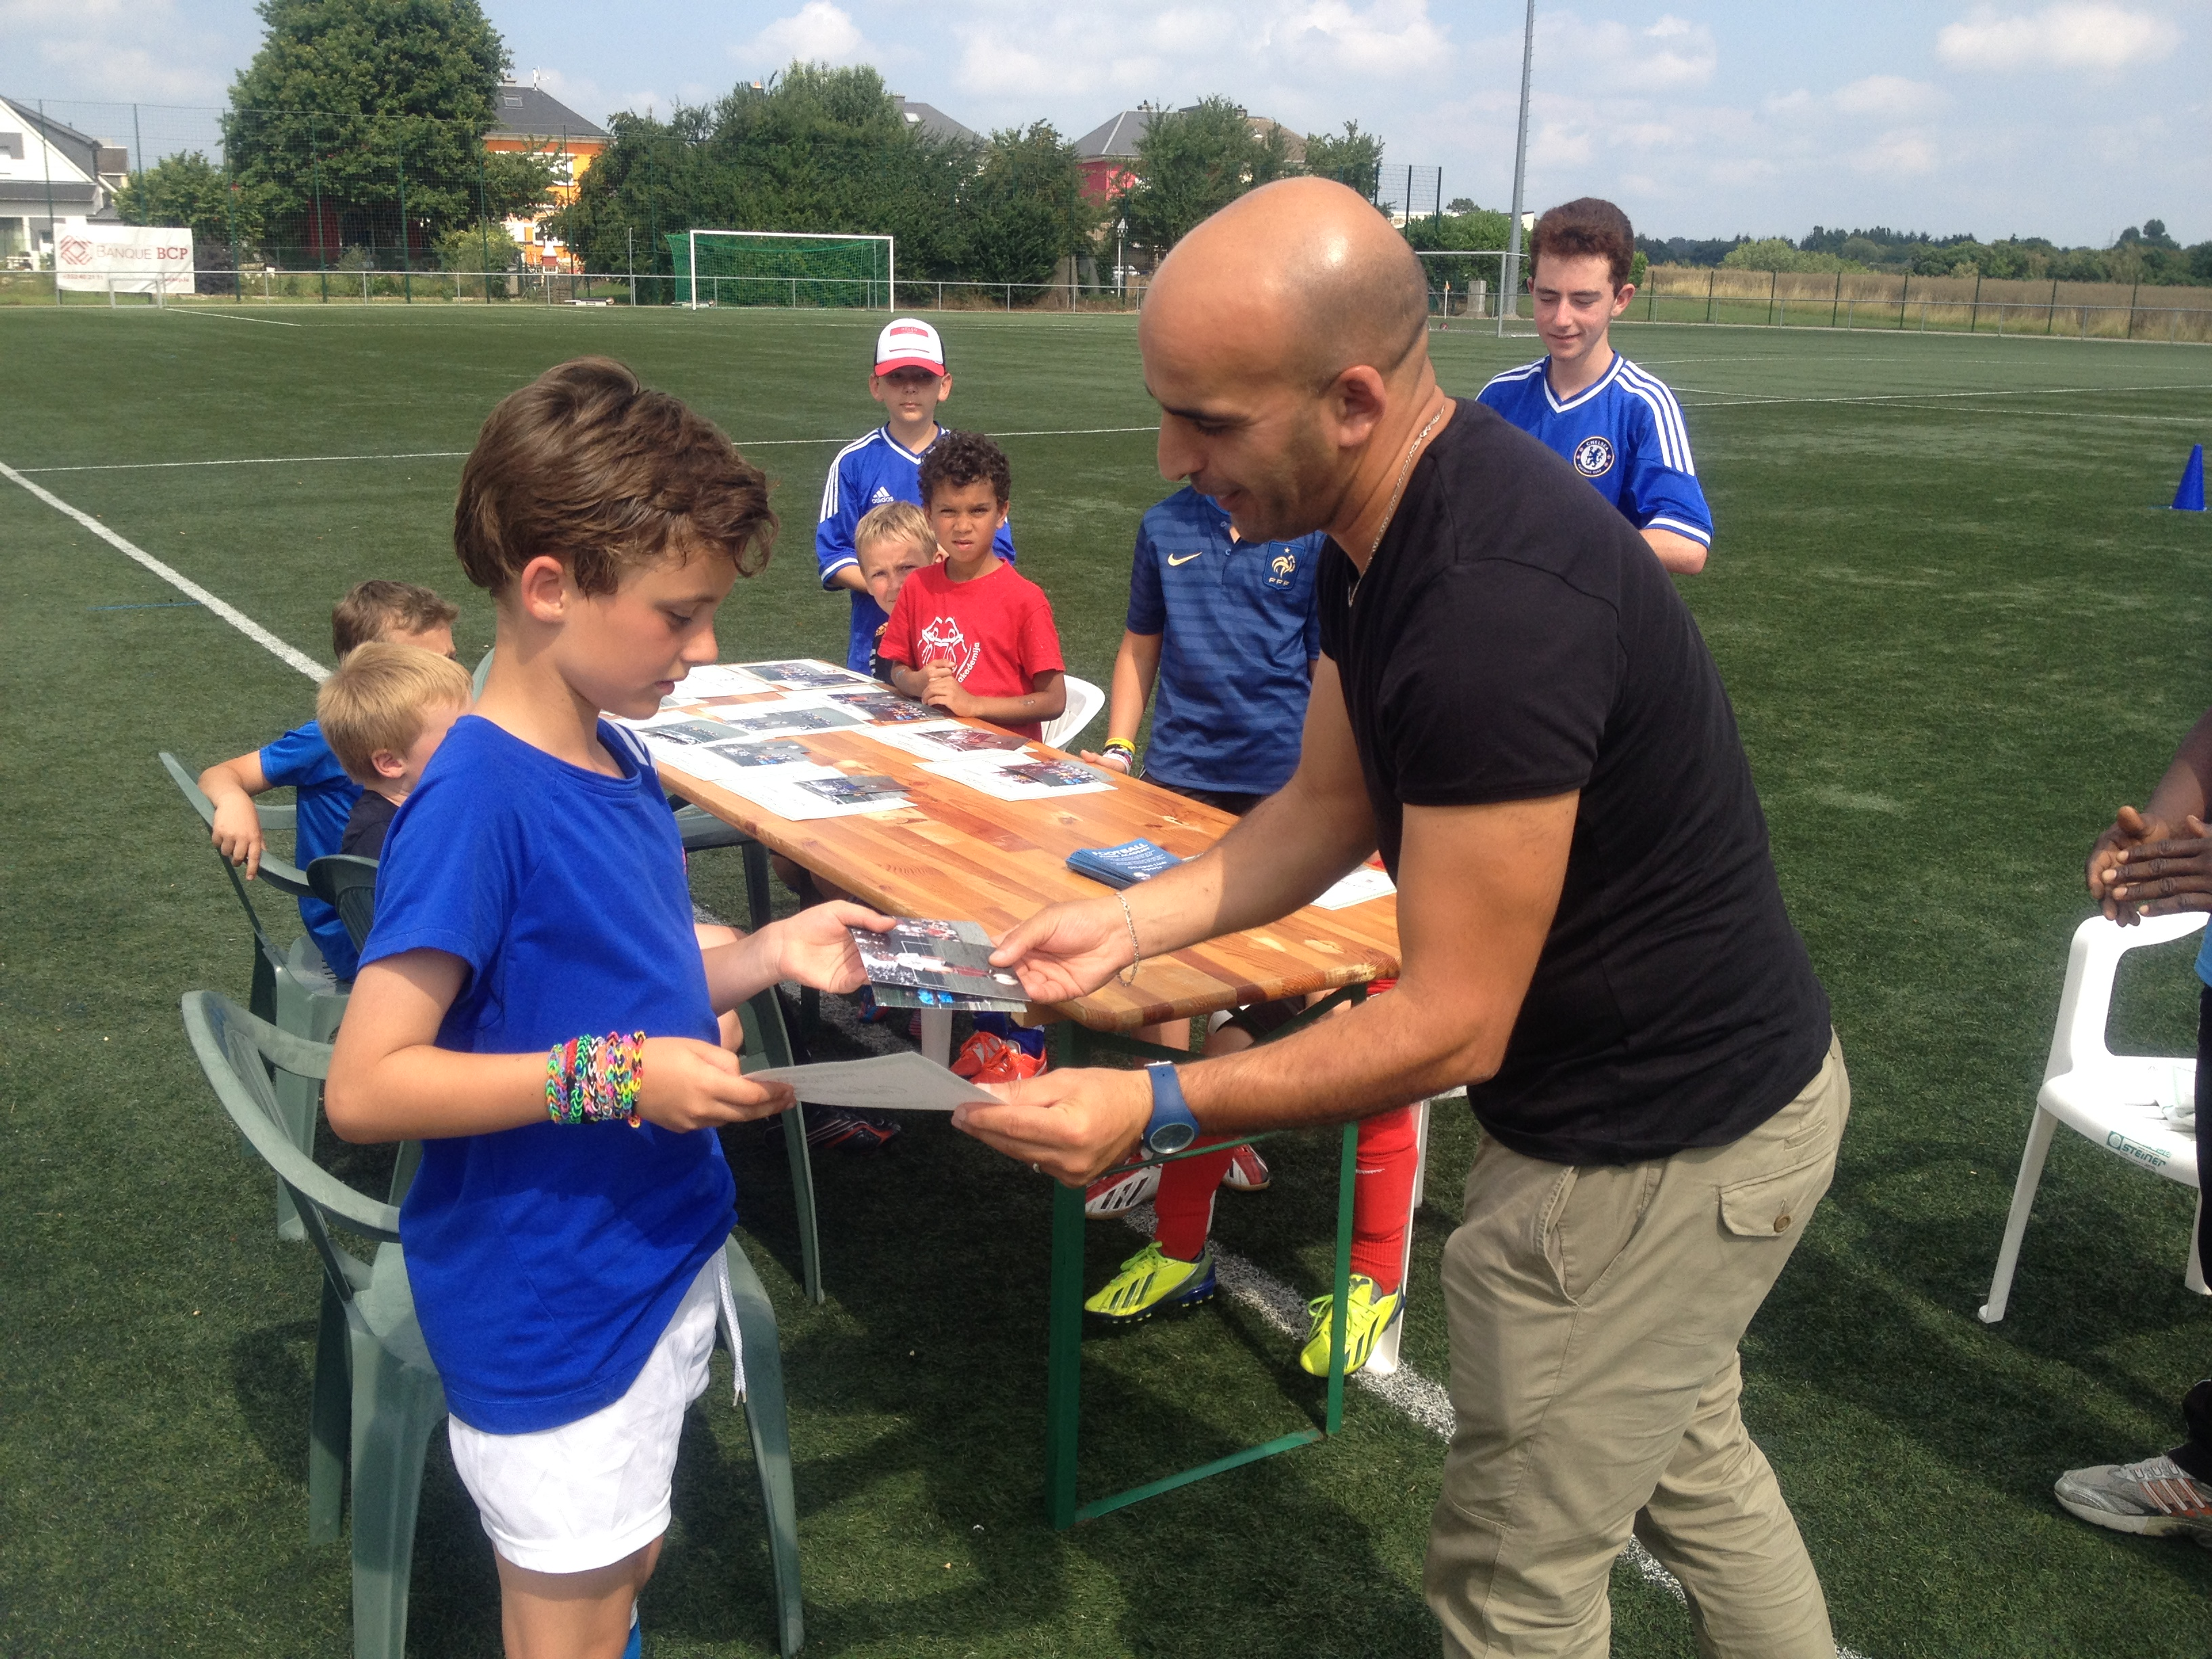 Award of Diploma after a Camp - Football Klinik Academy Luxembourg